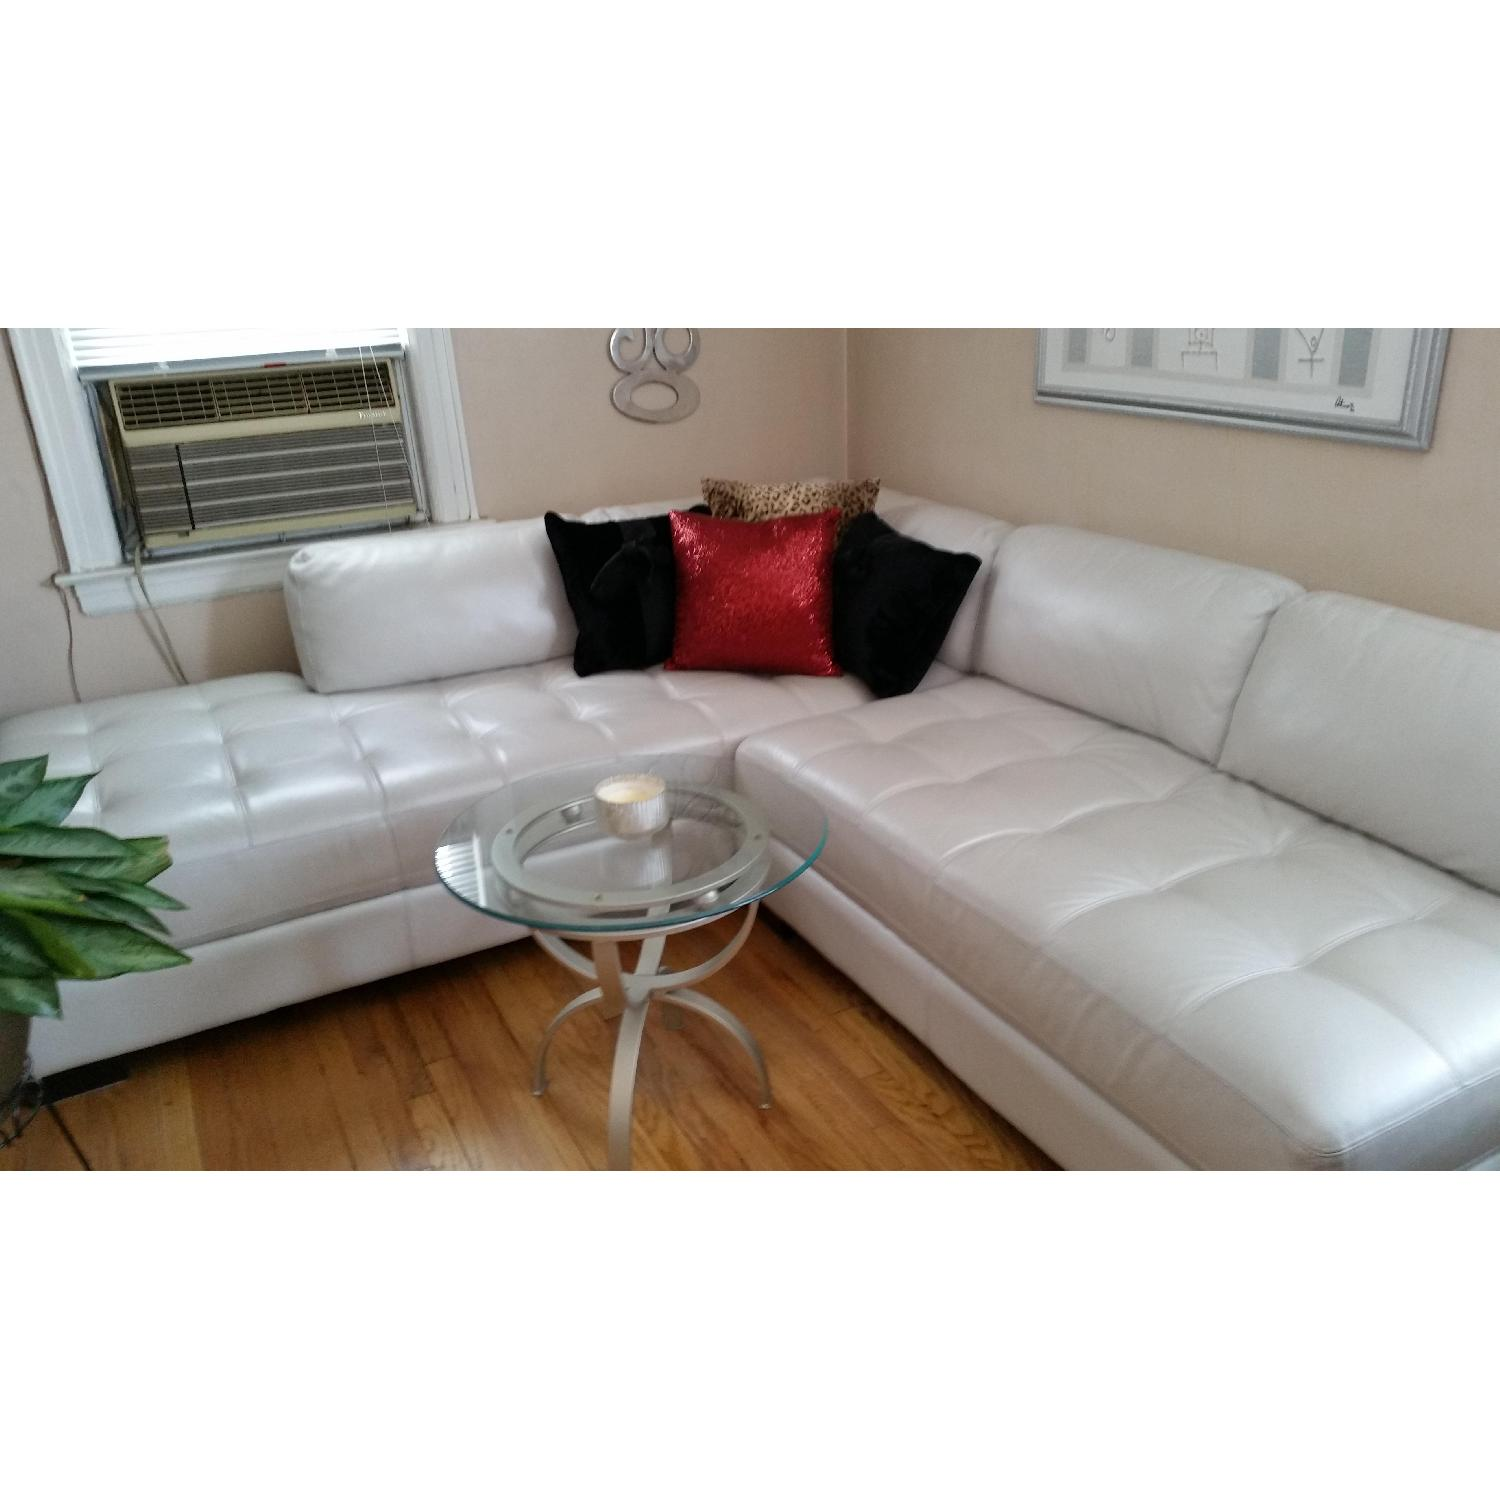 Chateau dAx Leather Sectional + Glass Table - image-1